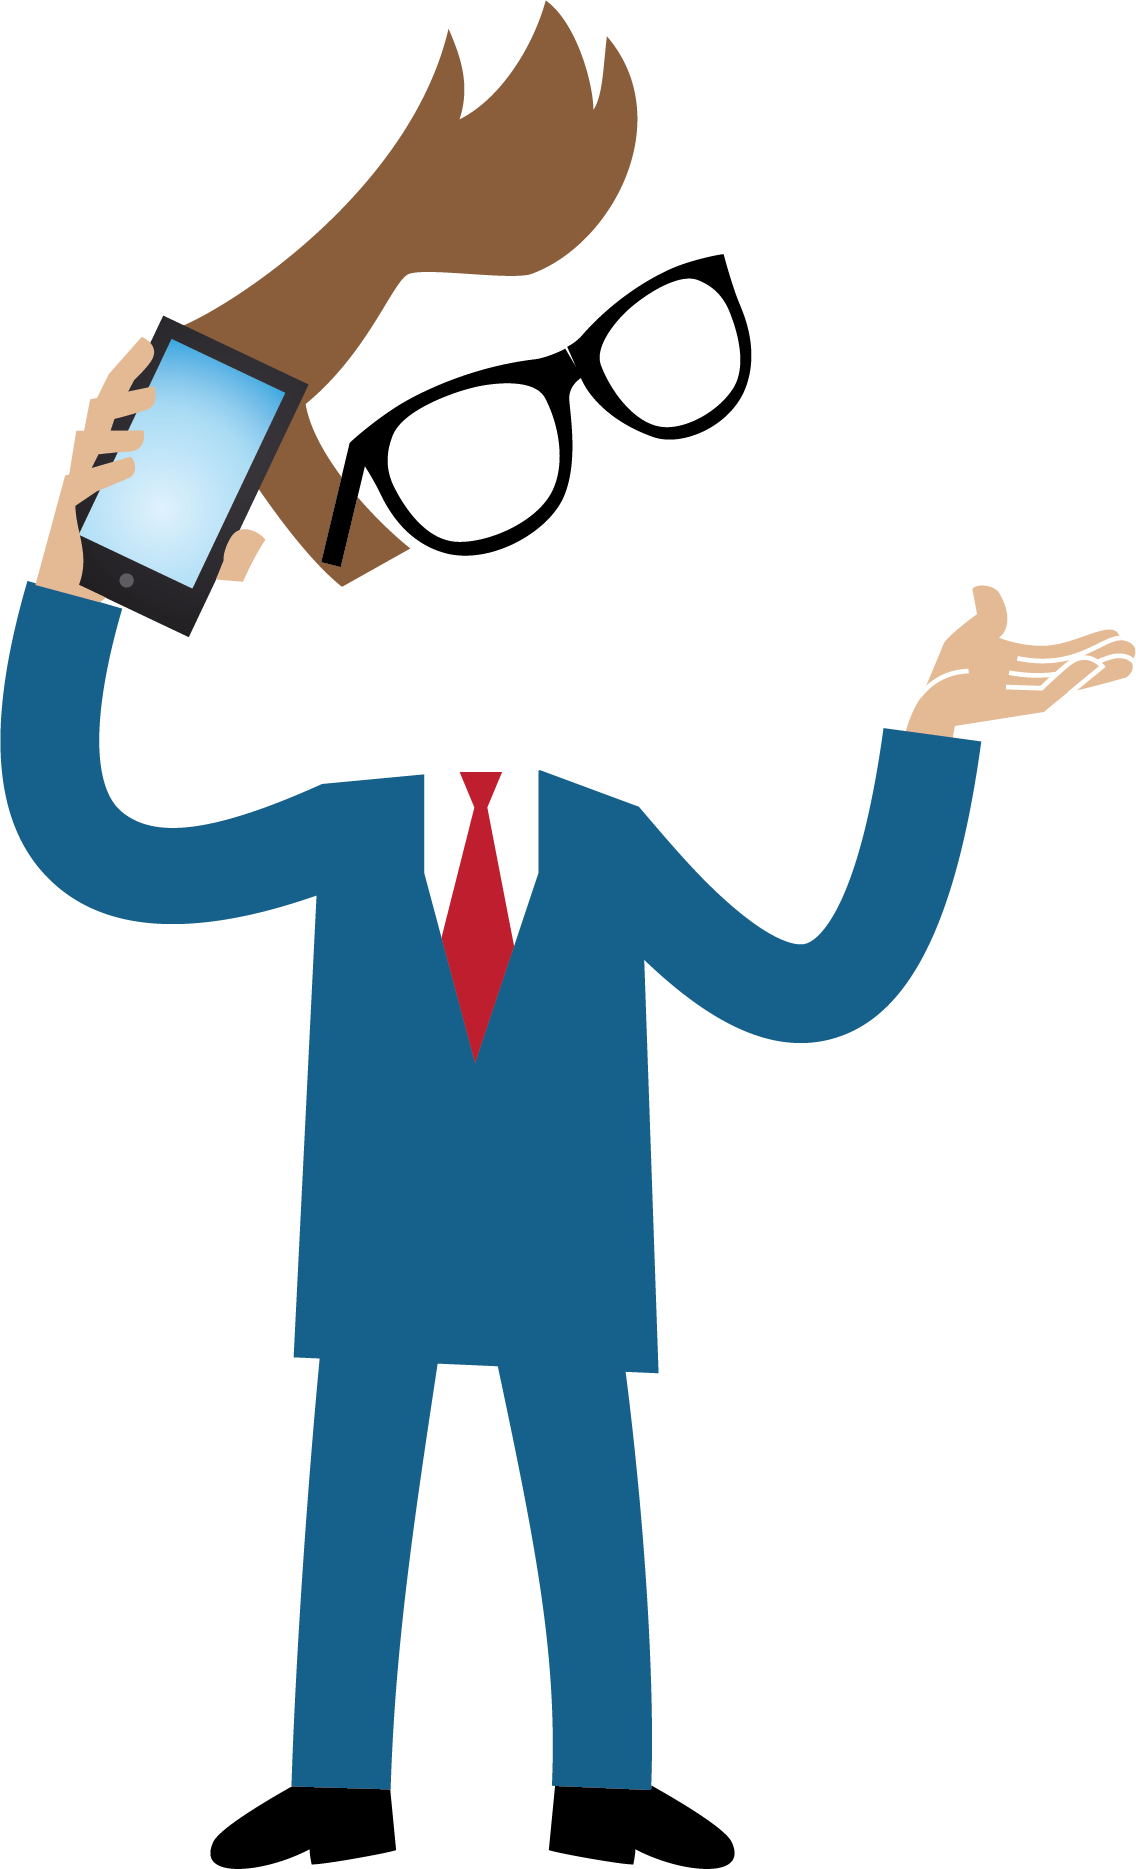 The recruitment expert about. Manager clipart sale engineer